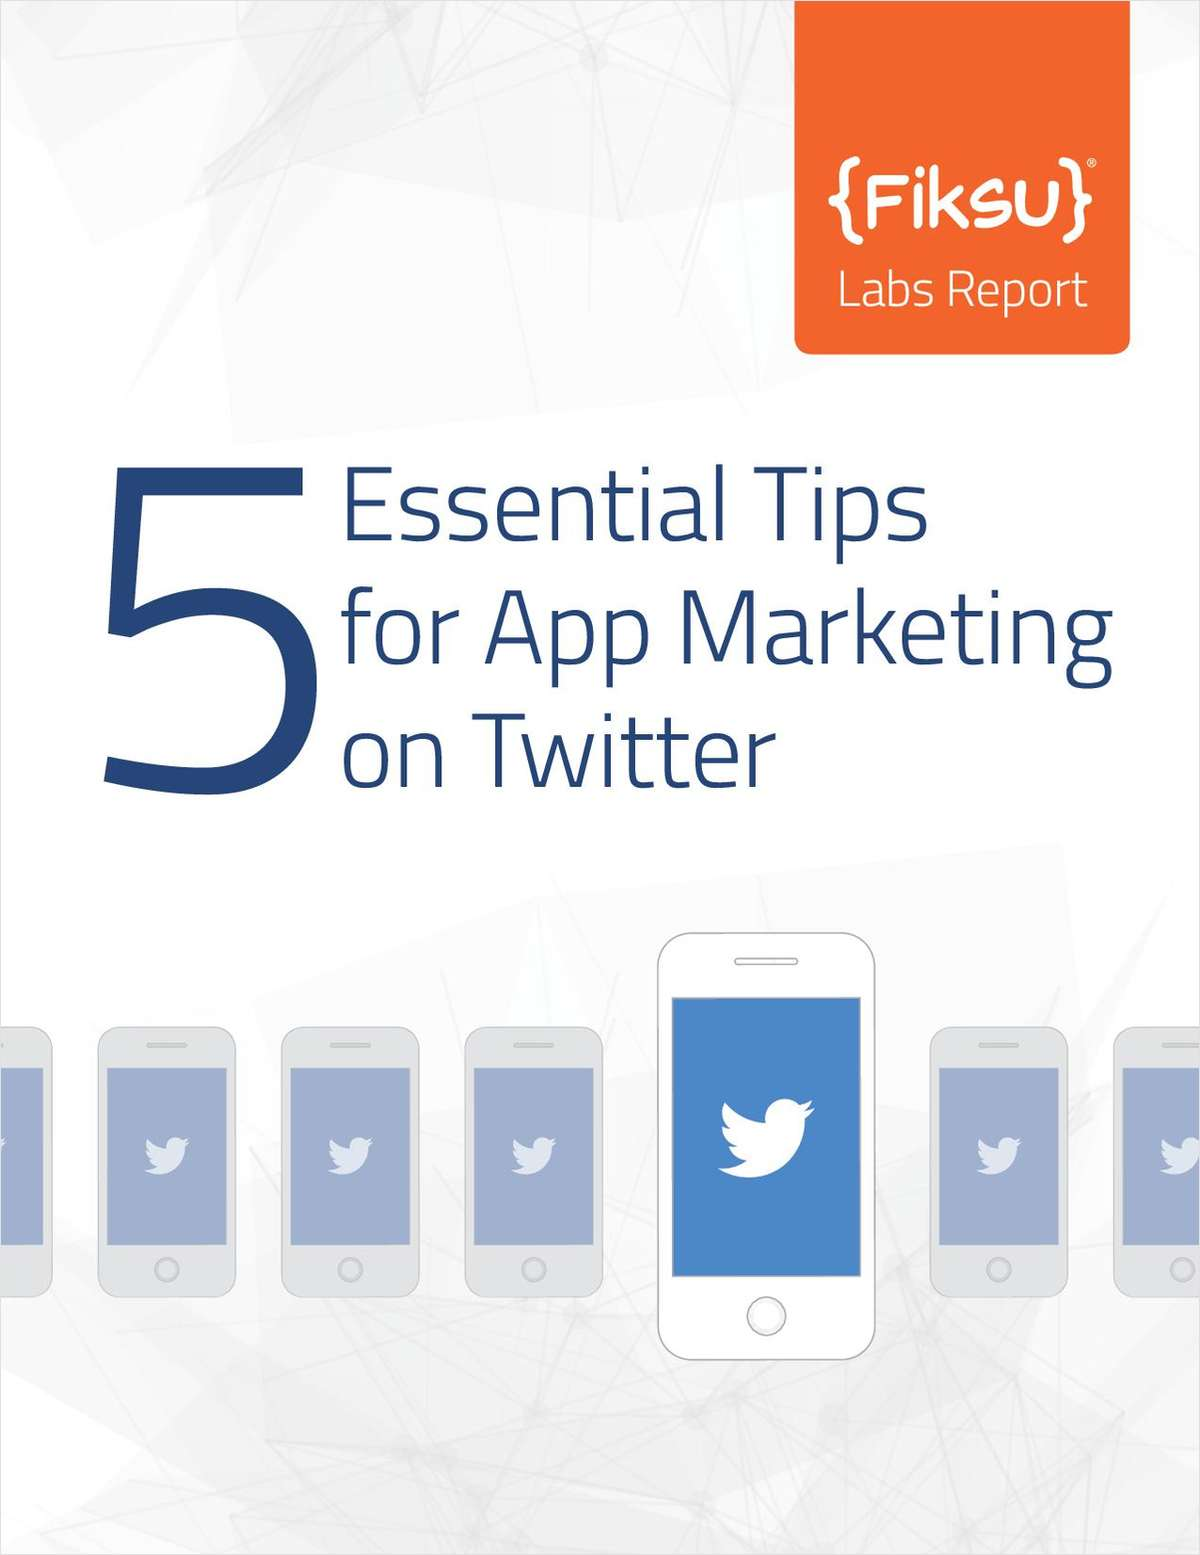 5 Essential Tips for App Marketing on Twitter